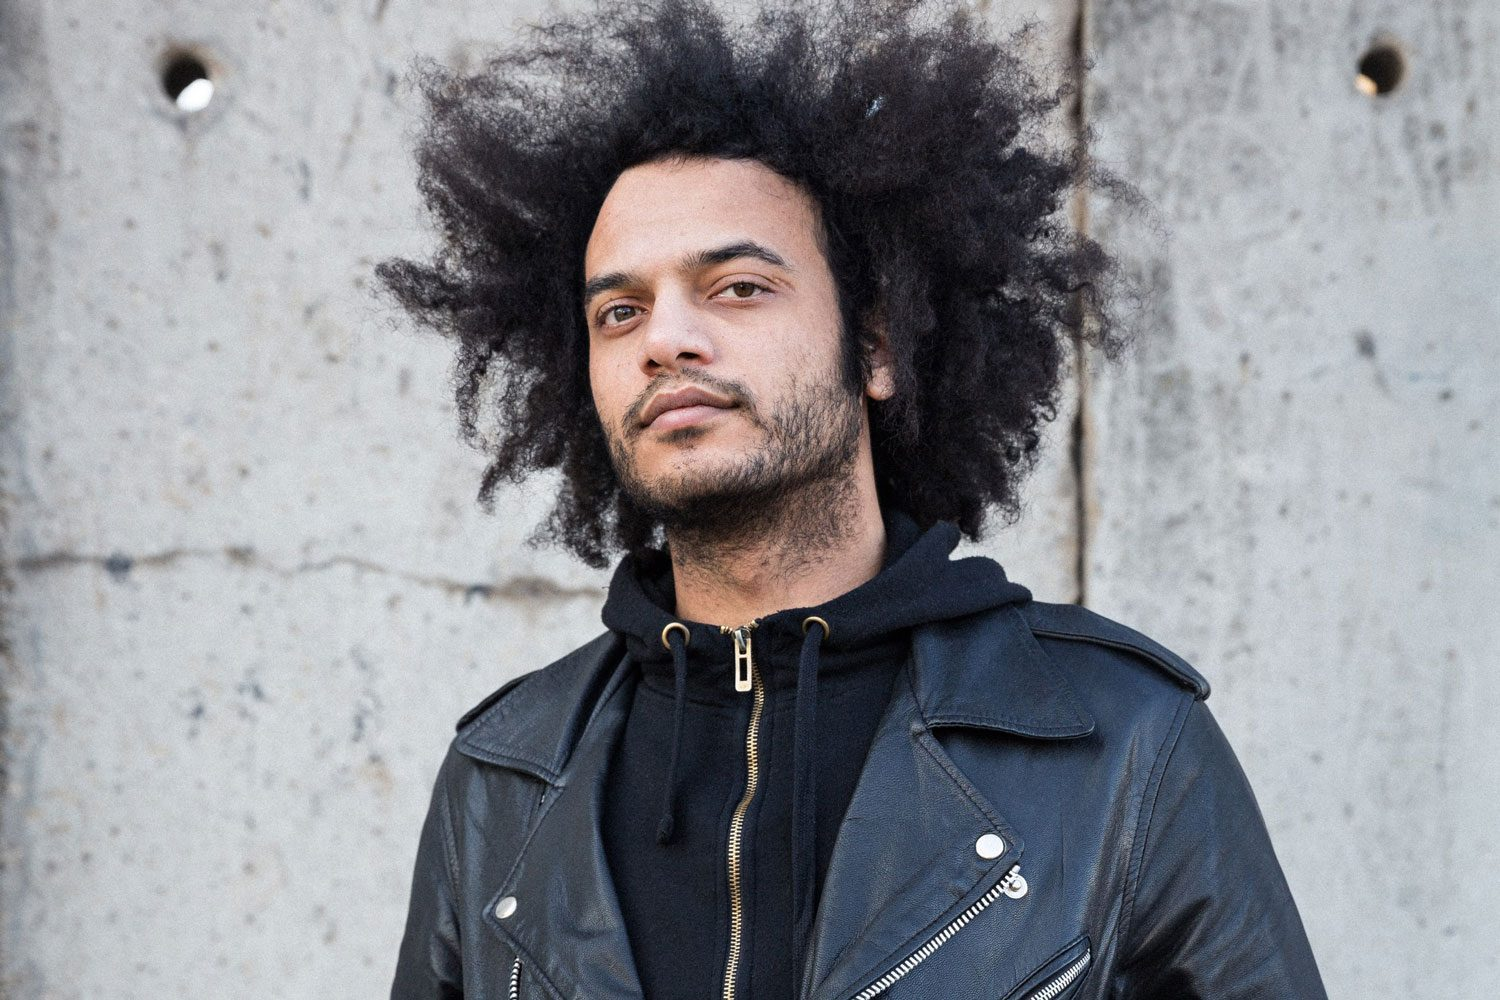 Zeal & Ardor is going to release a tour exclusive live vinyl